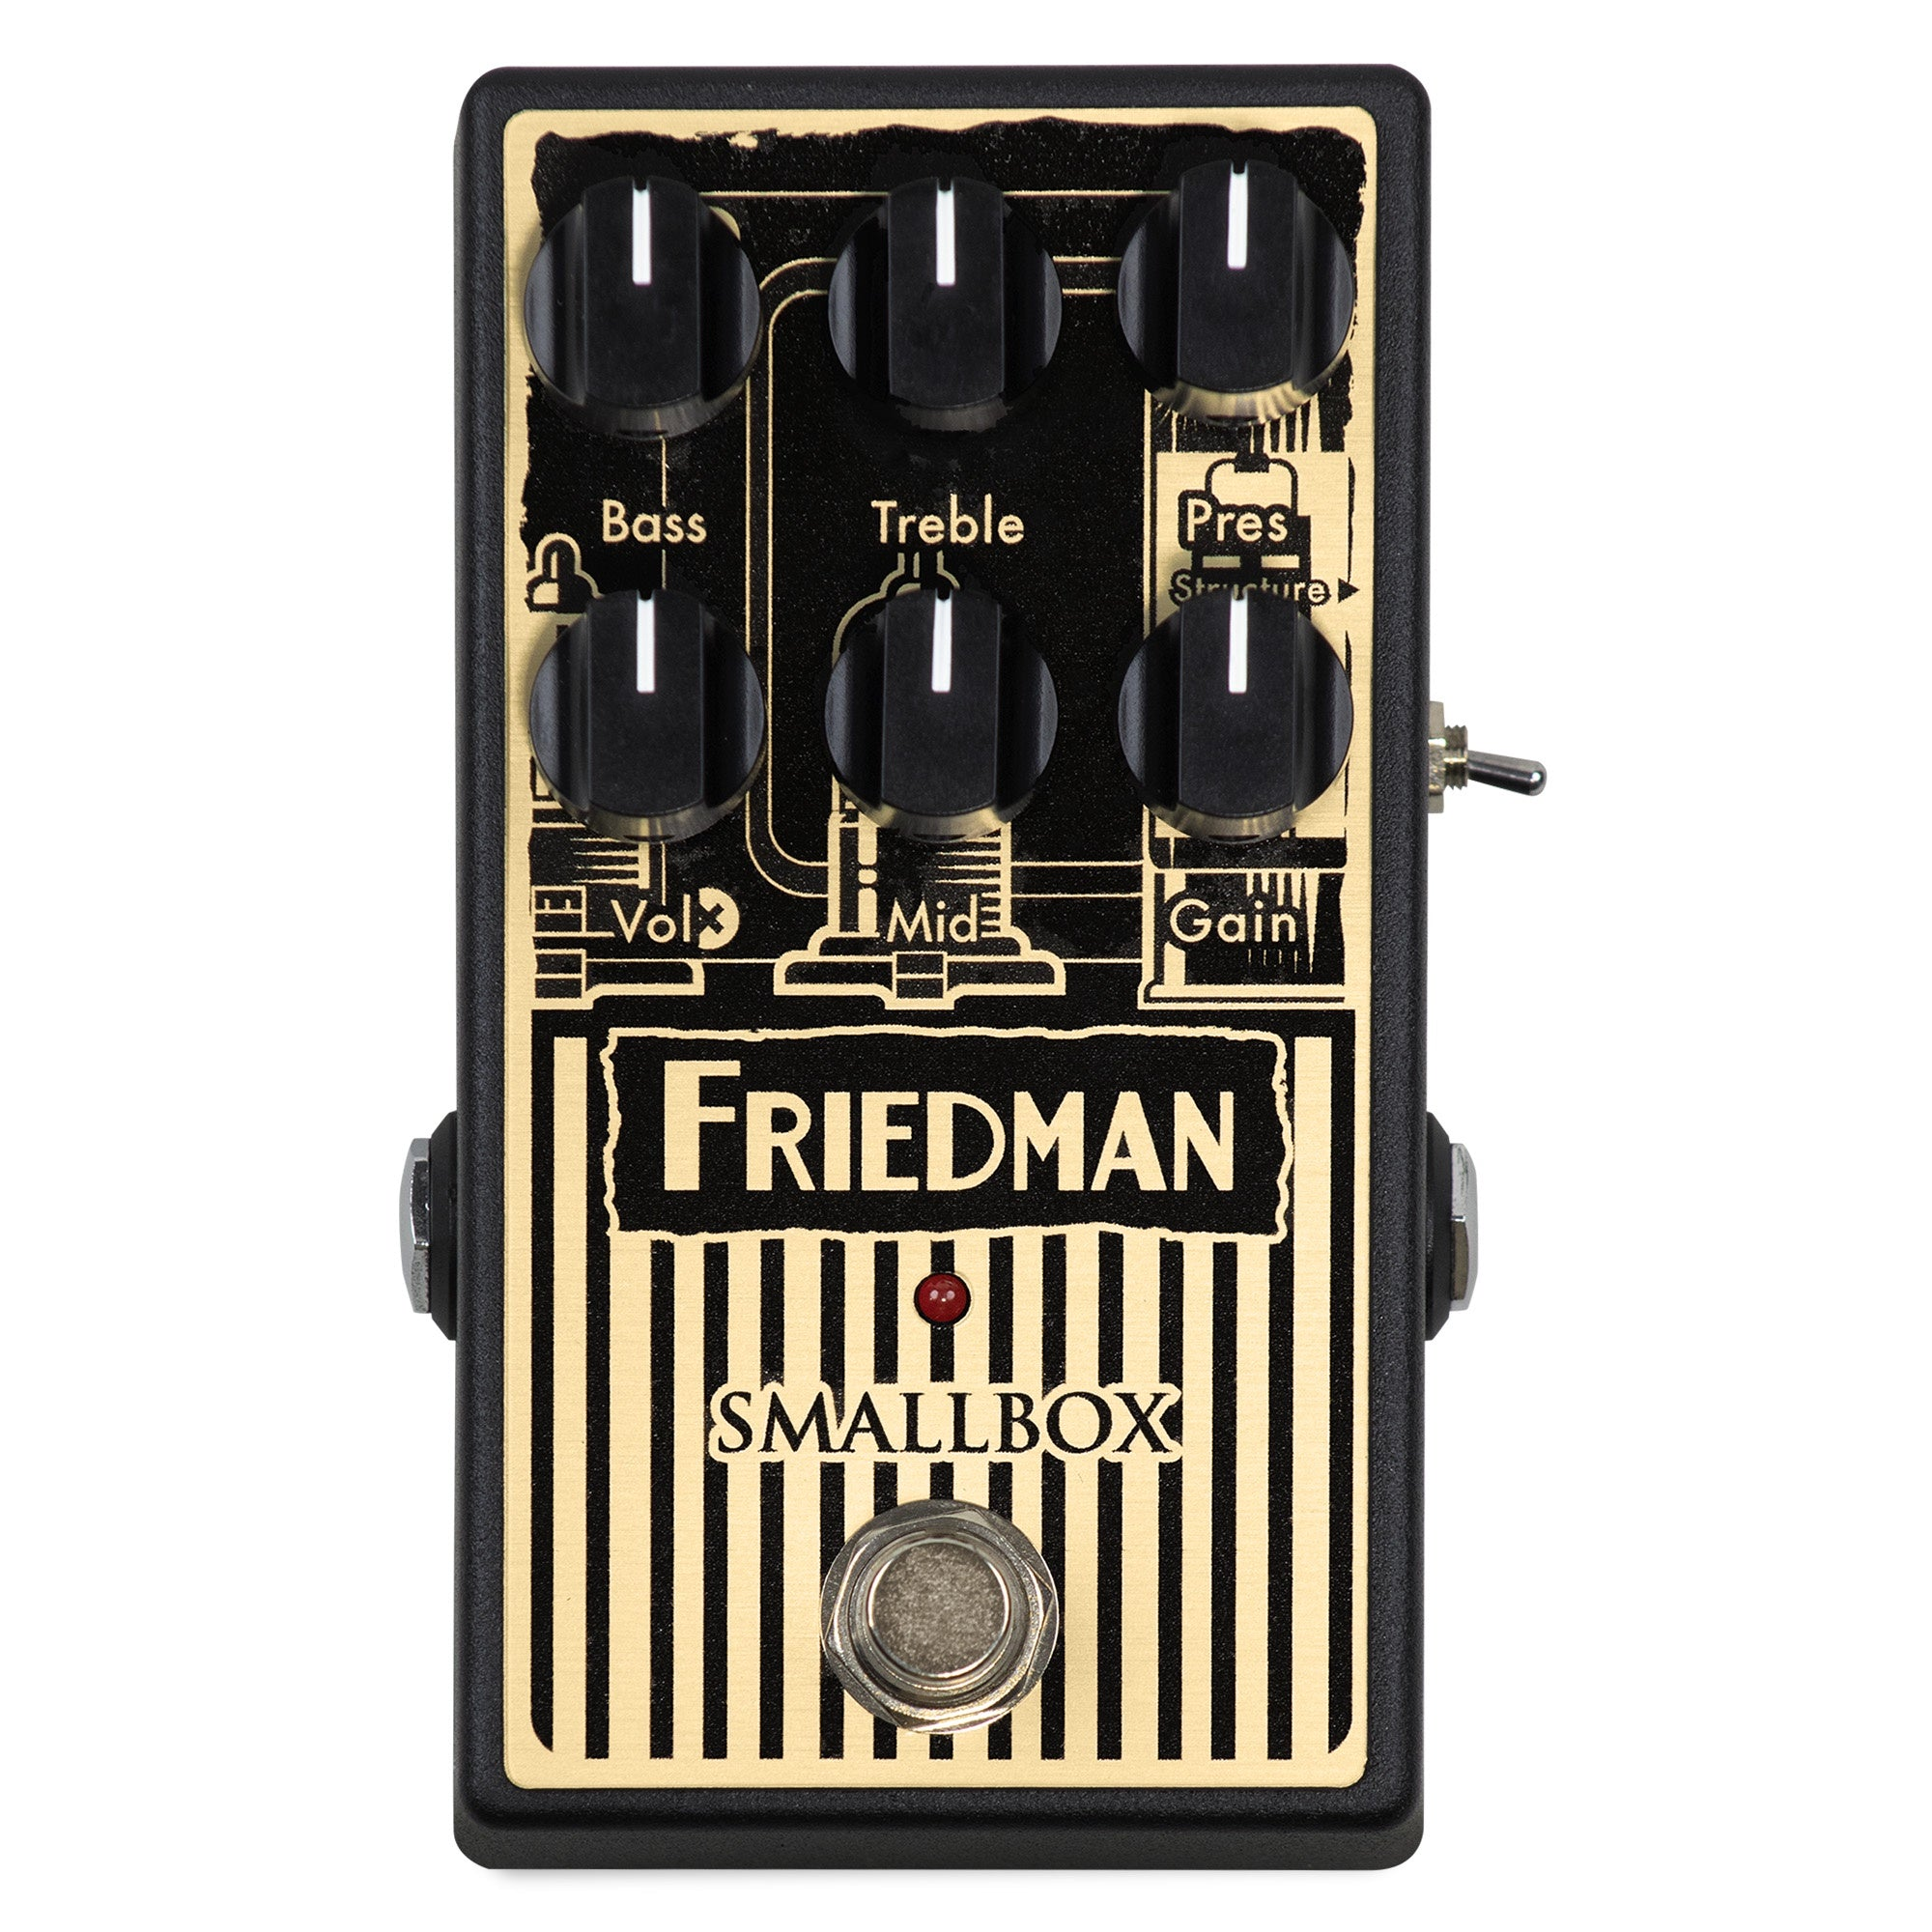 Friedman Smallbox Overdrive Pedal